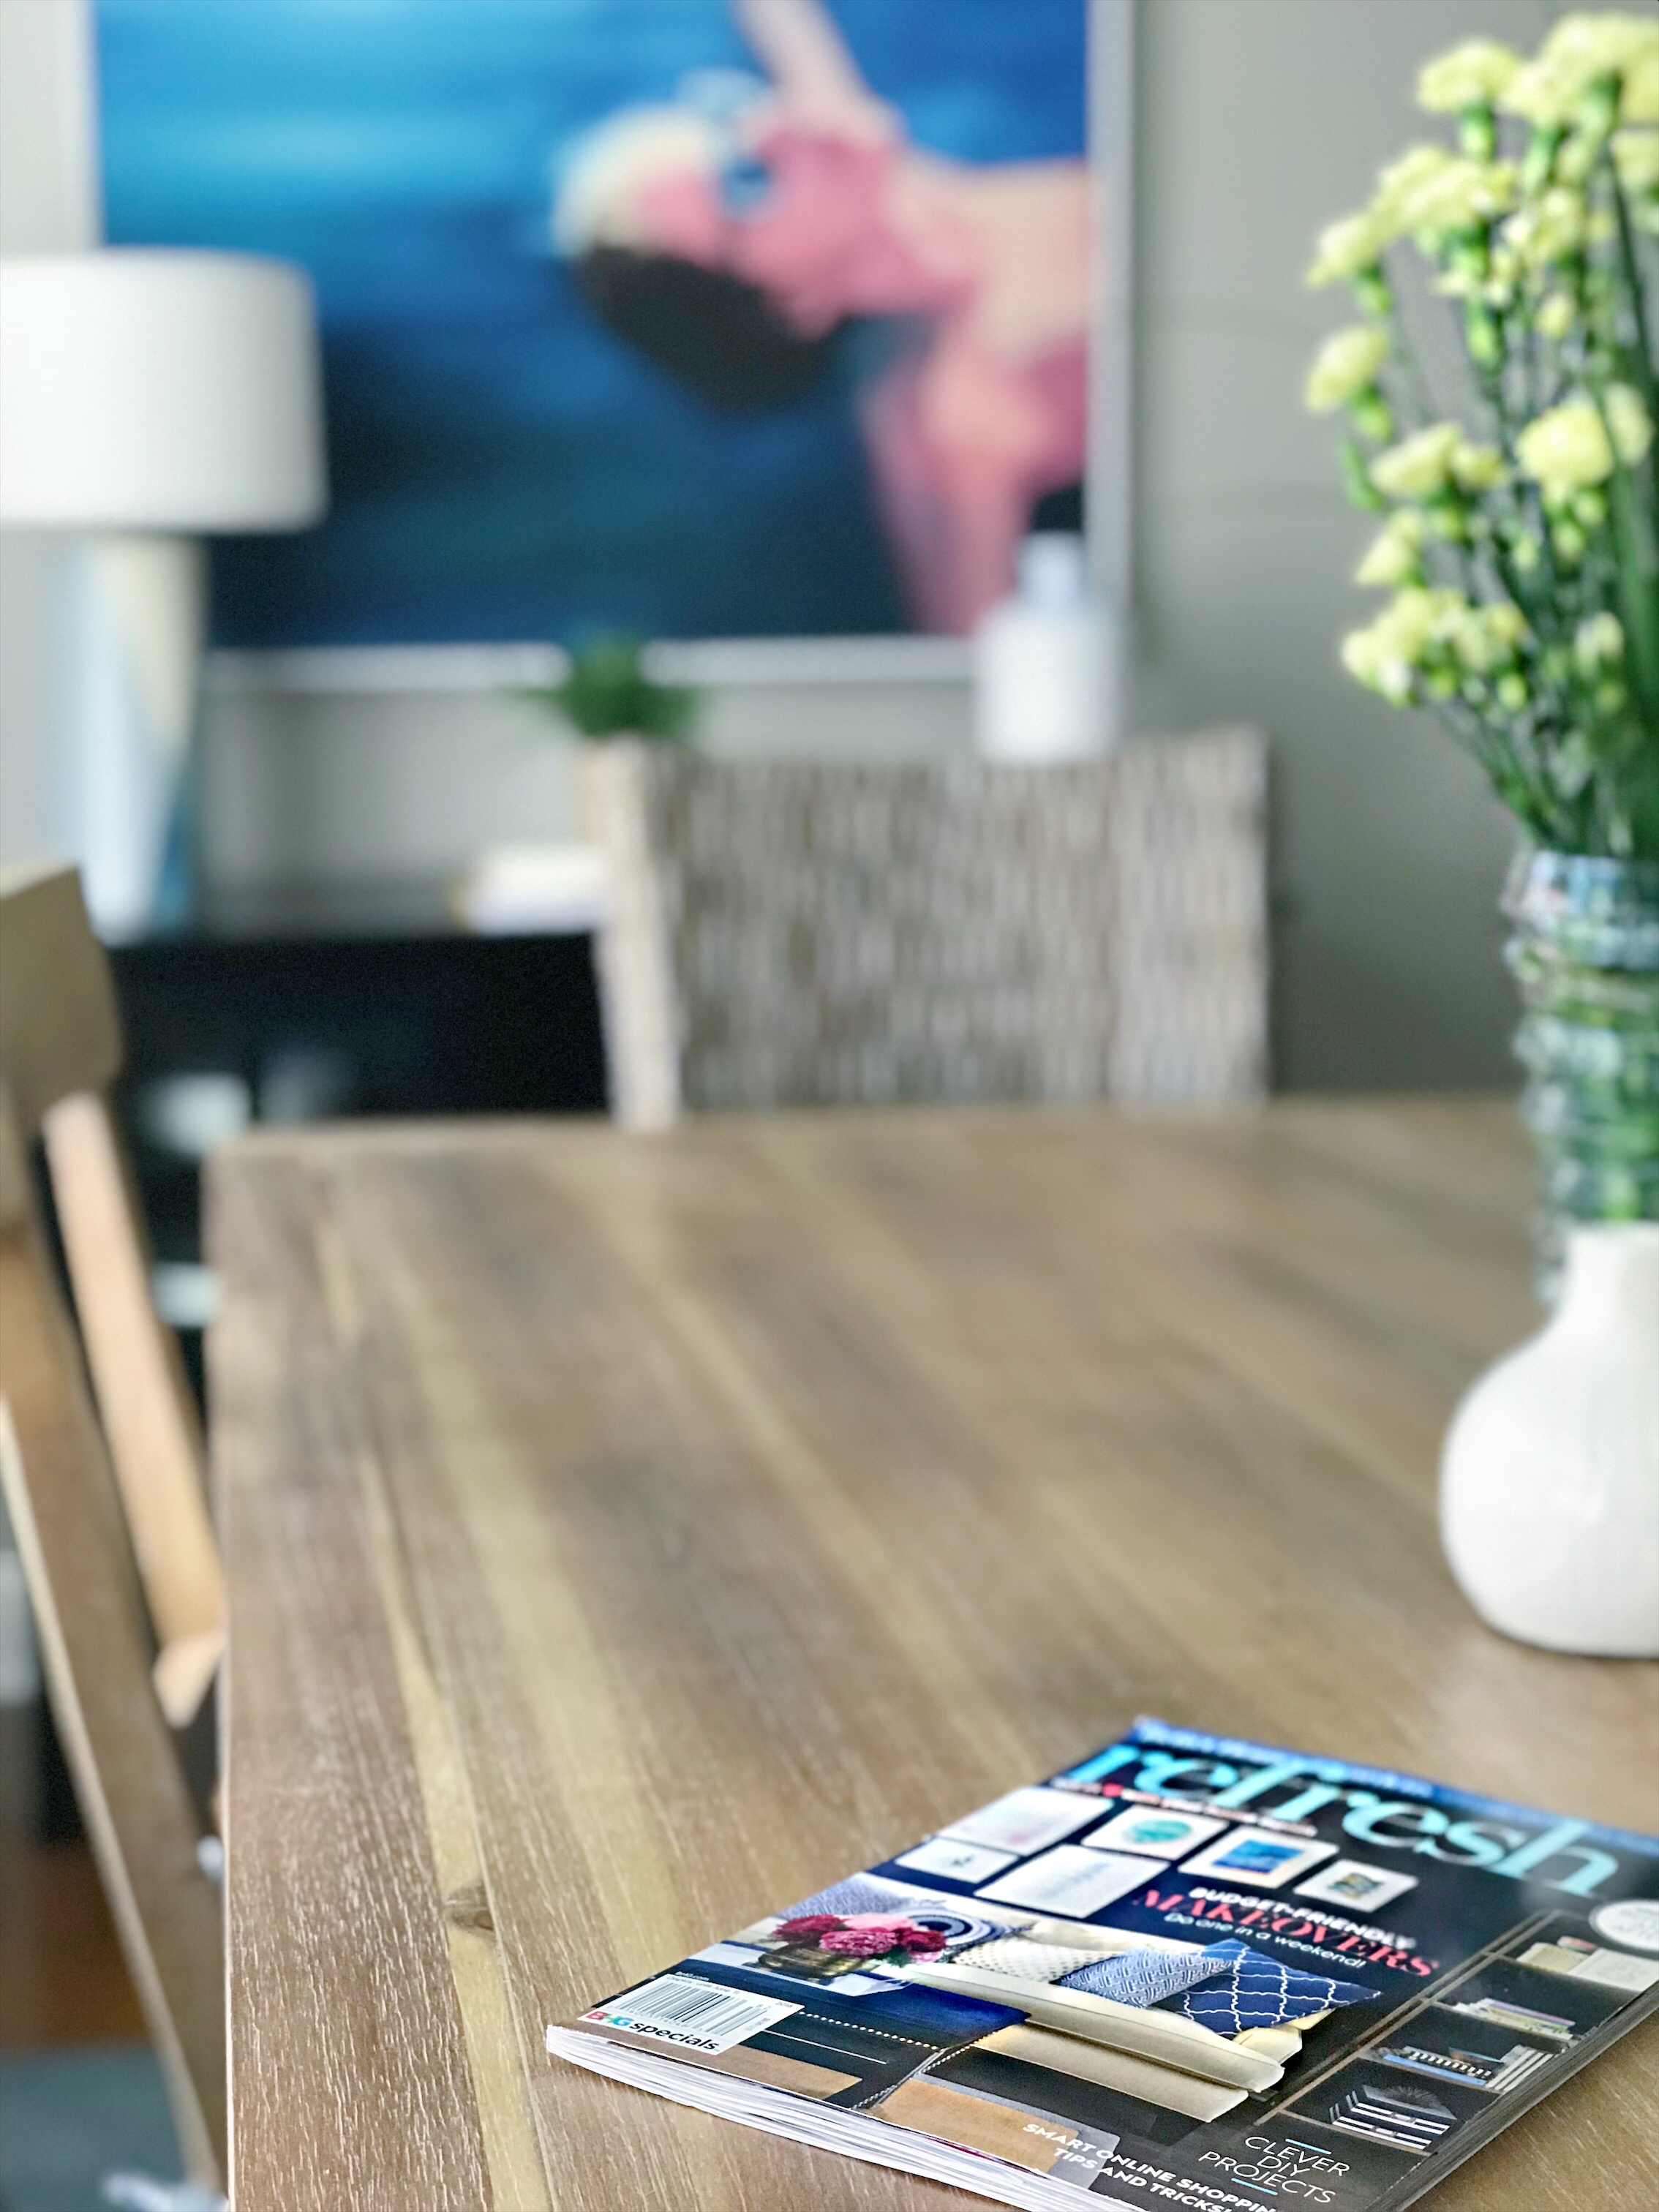 home magazine on table